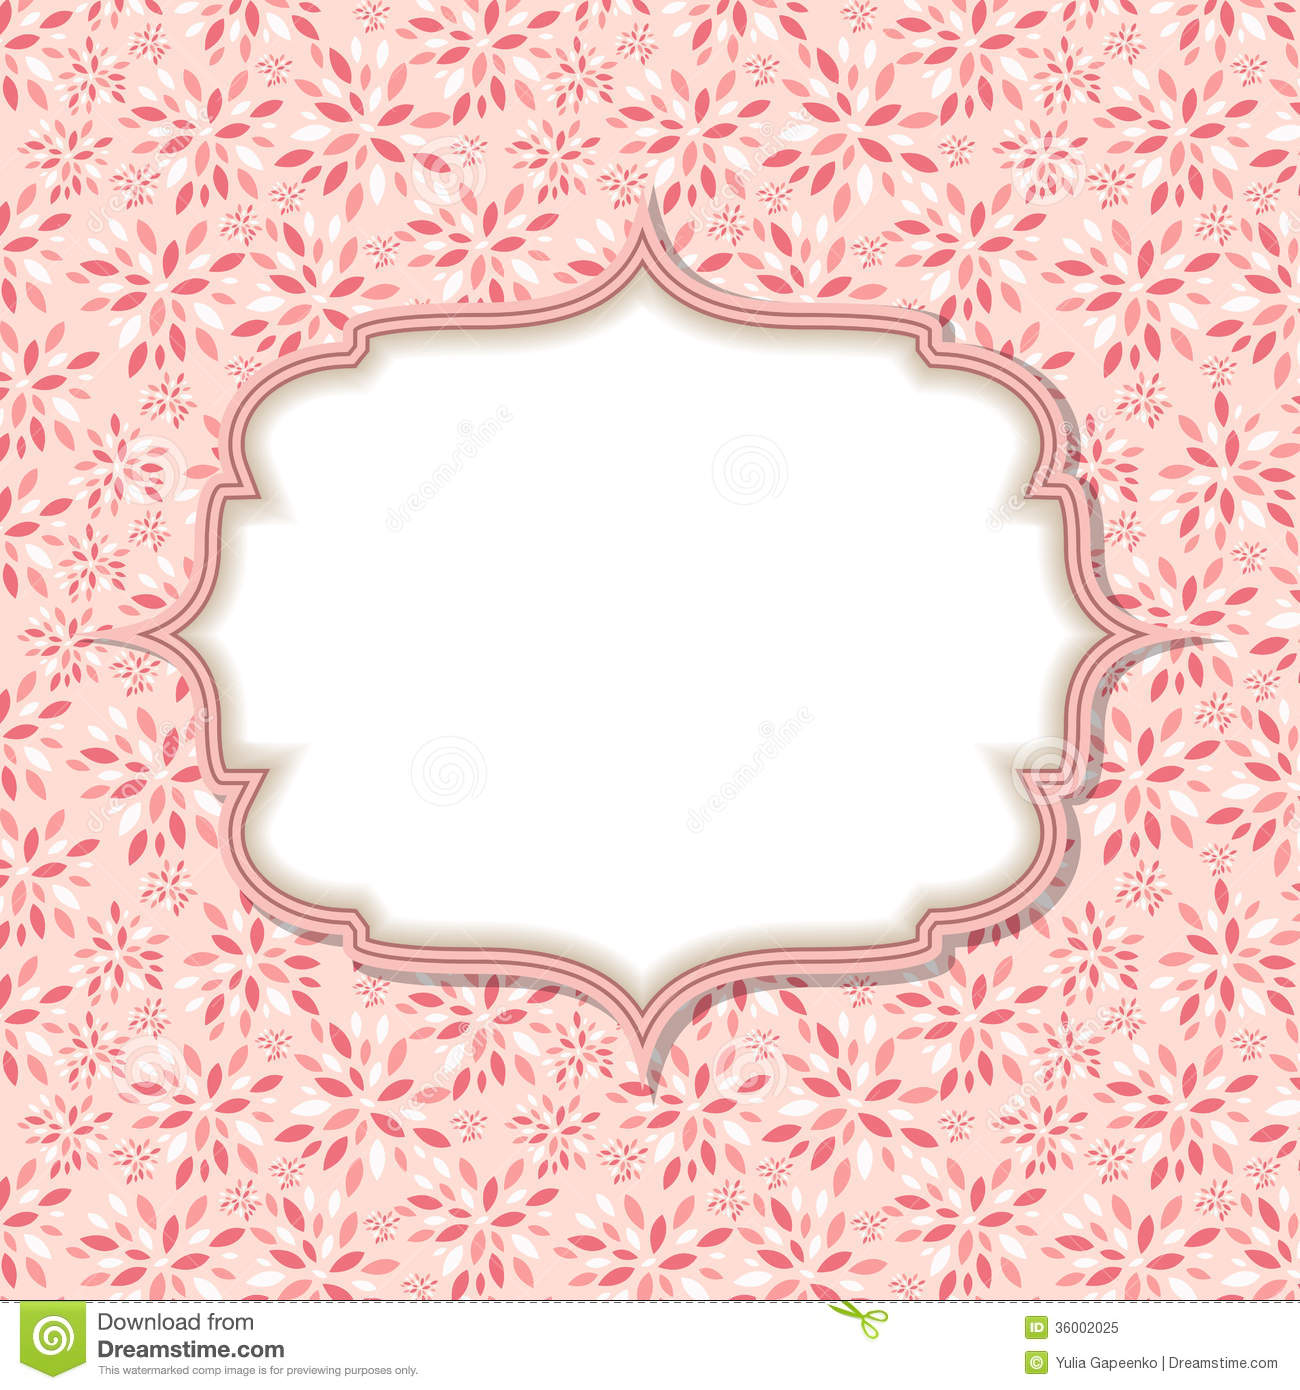 Cute Pink Frame Vector Illustration Royalty Free Stock Photo - Image ...